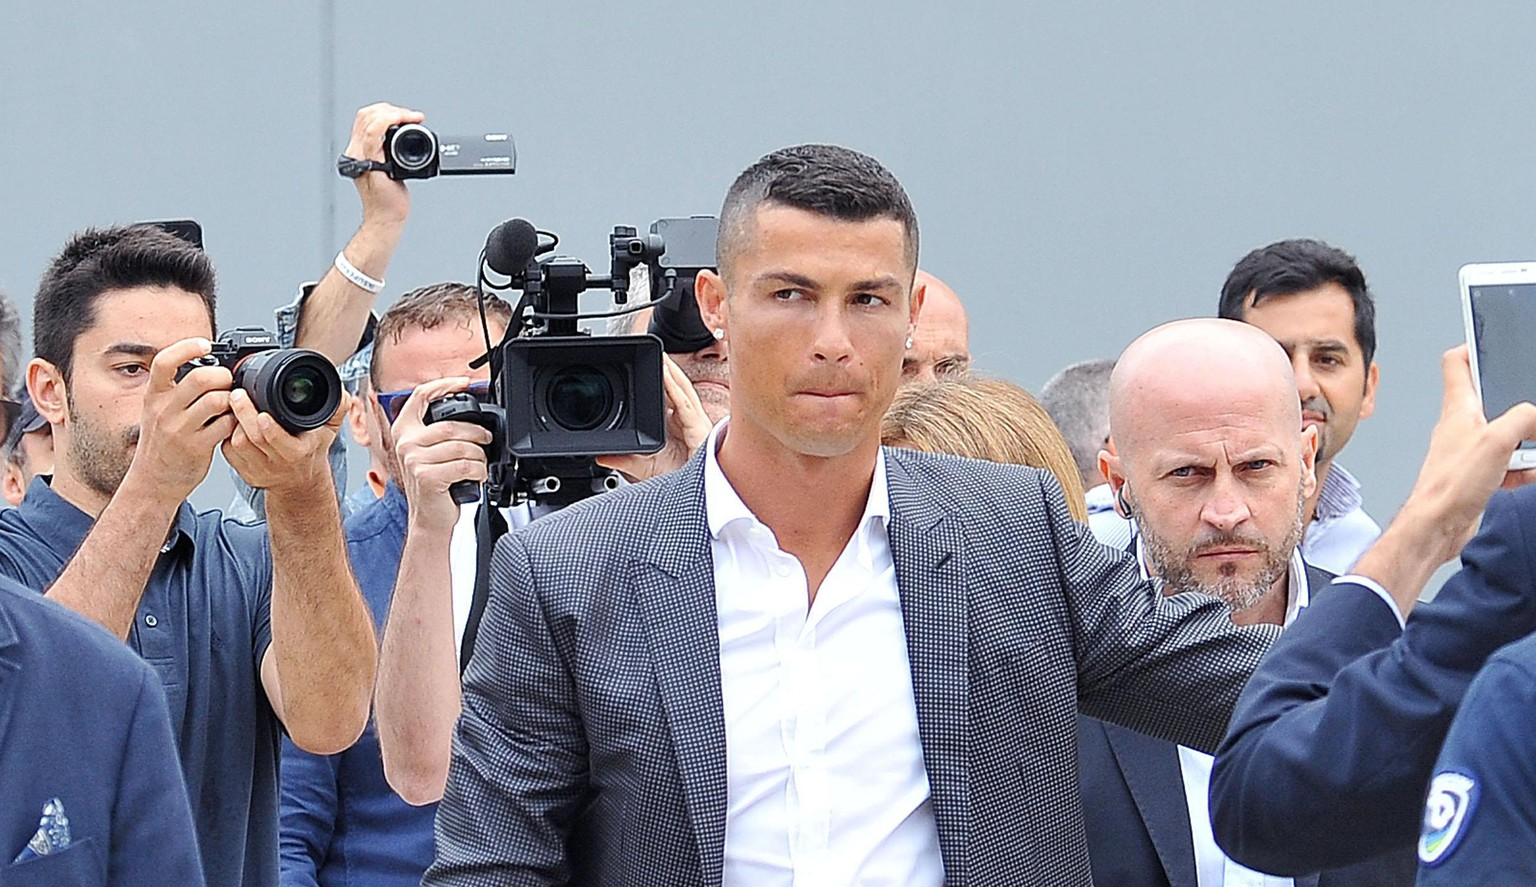 epa06892562 New Juventus soccer player Cristiano Ronaldo (C) of Portugal arrives at Juventus J Medical in Turin, Italy, 16 July 2018. Cristiano Ronaldo joins Italian Serie A side Juventus FC.  EPA/ALESSANDRO DI MARCO